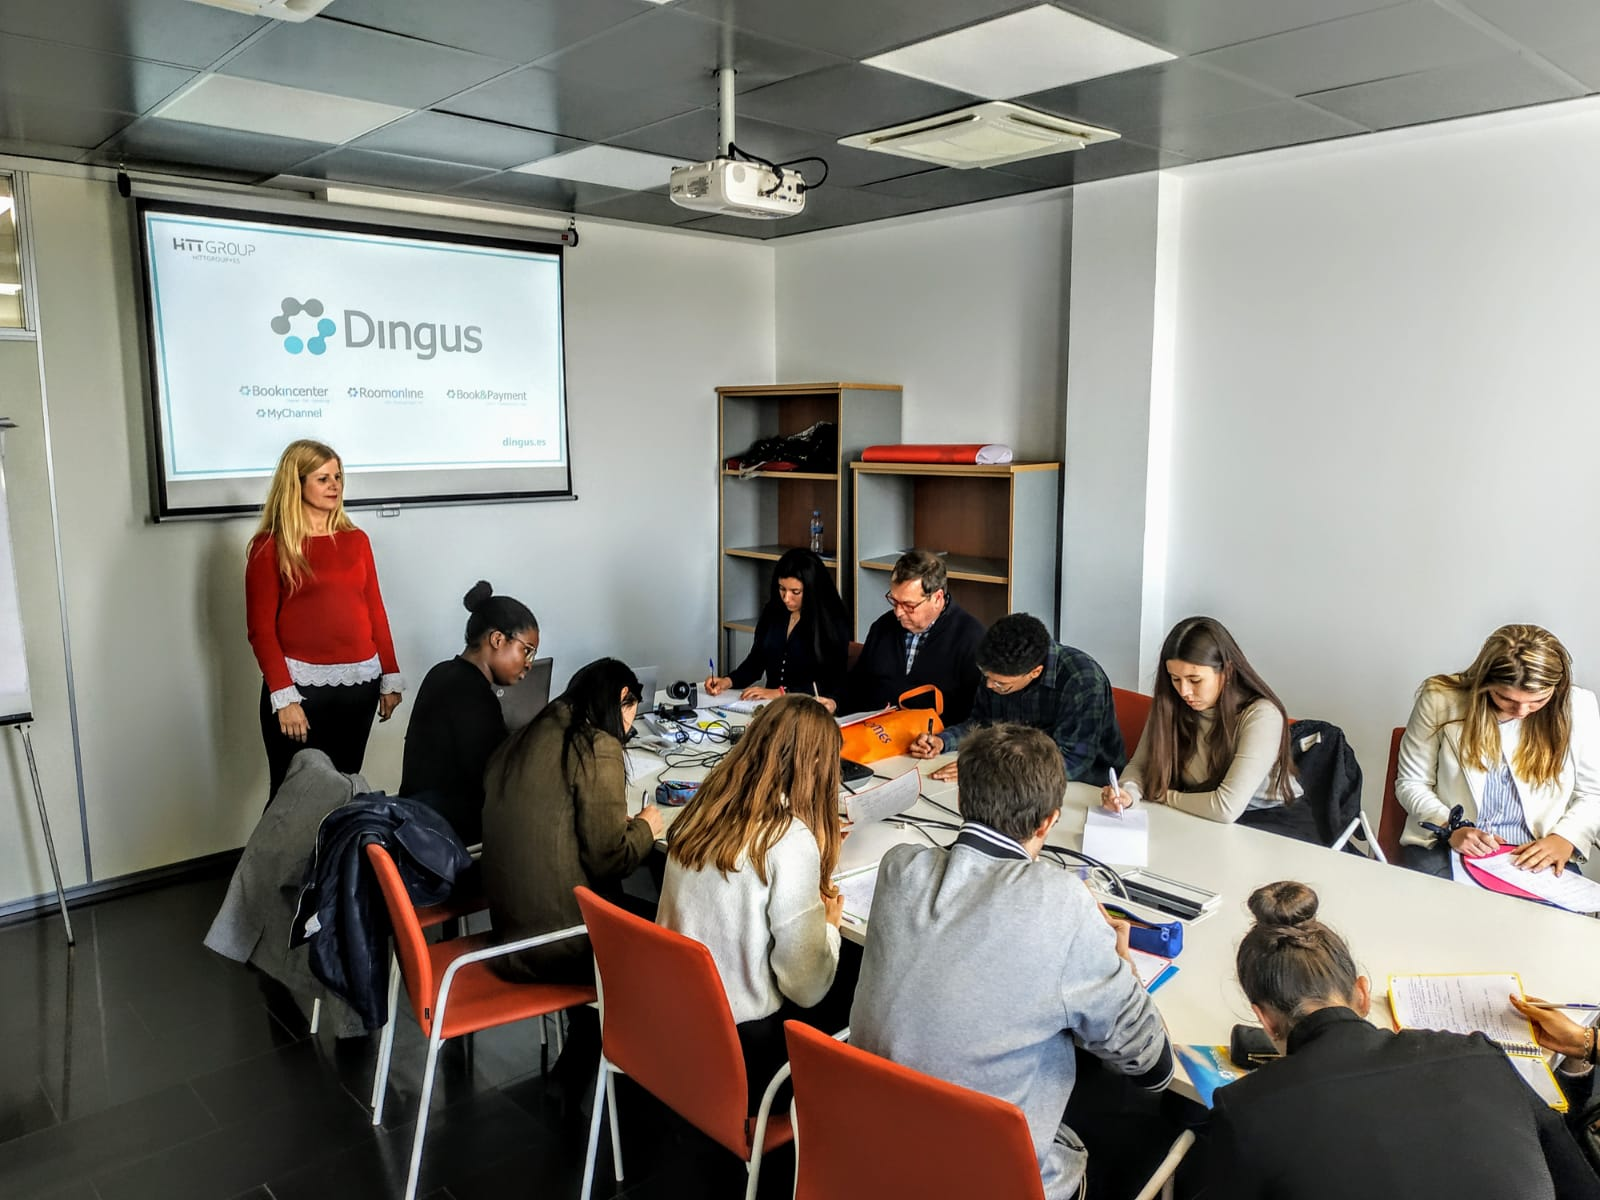 Practical session in Dingus for students of the Balearic University